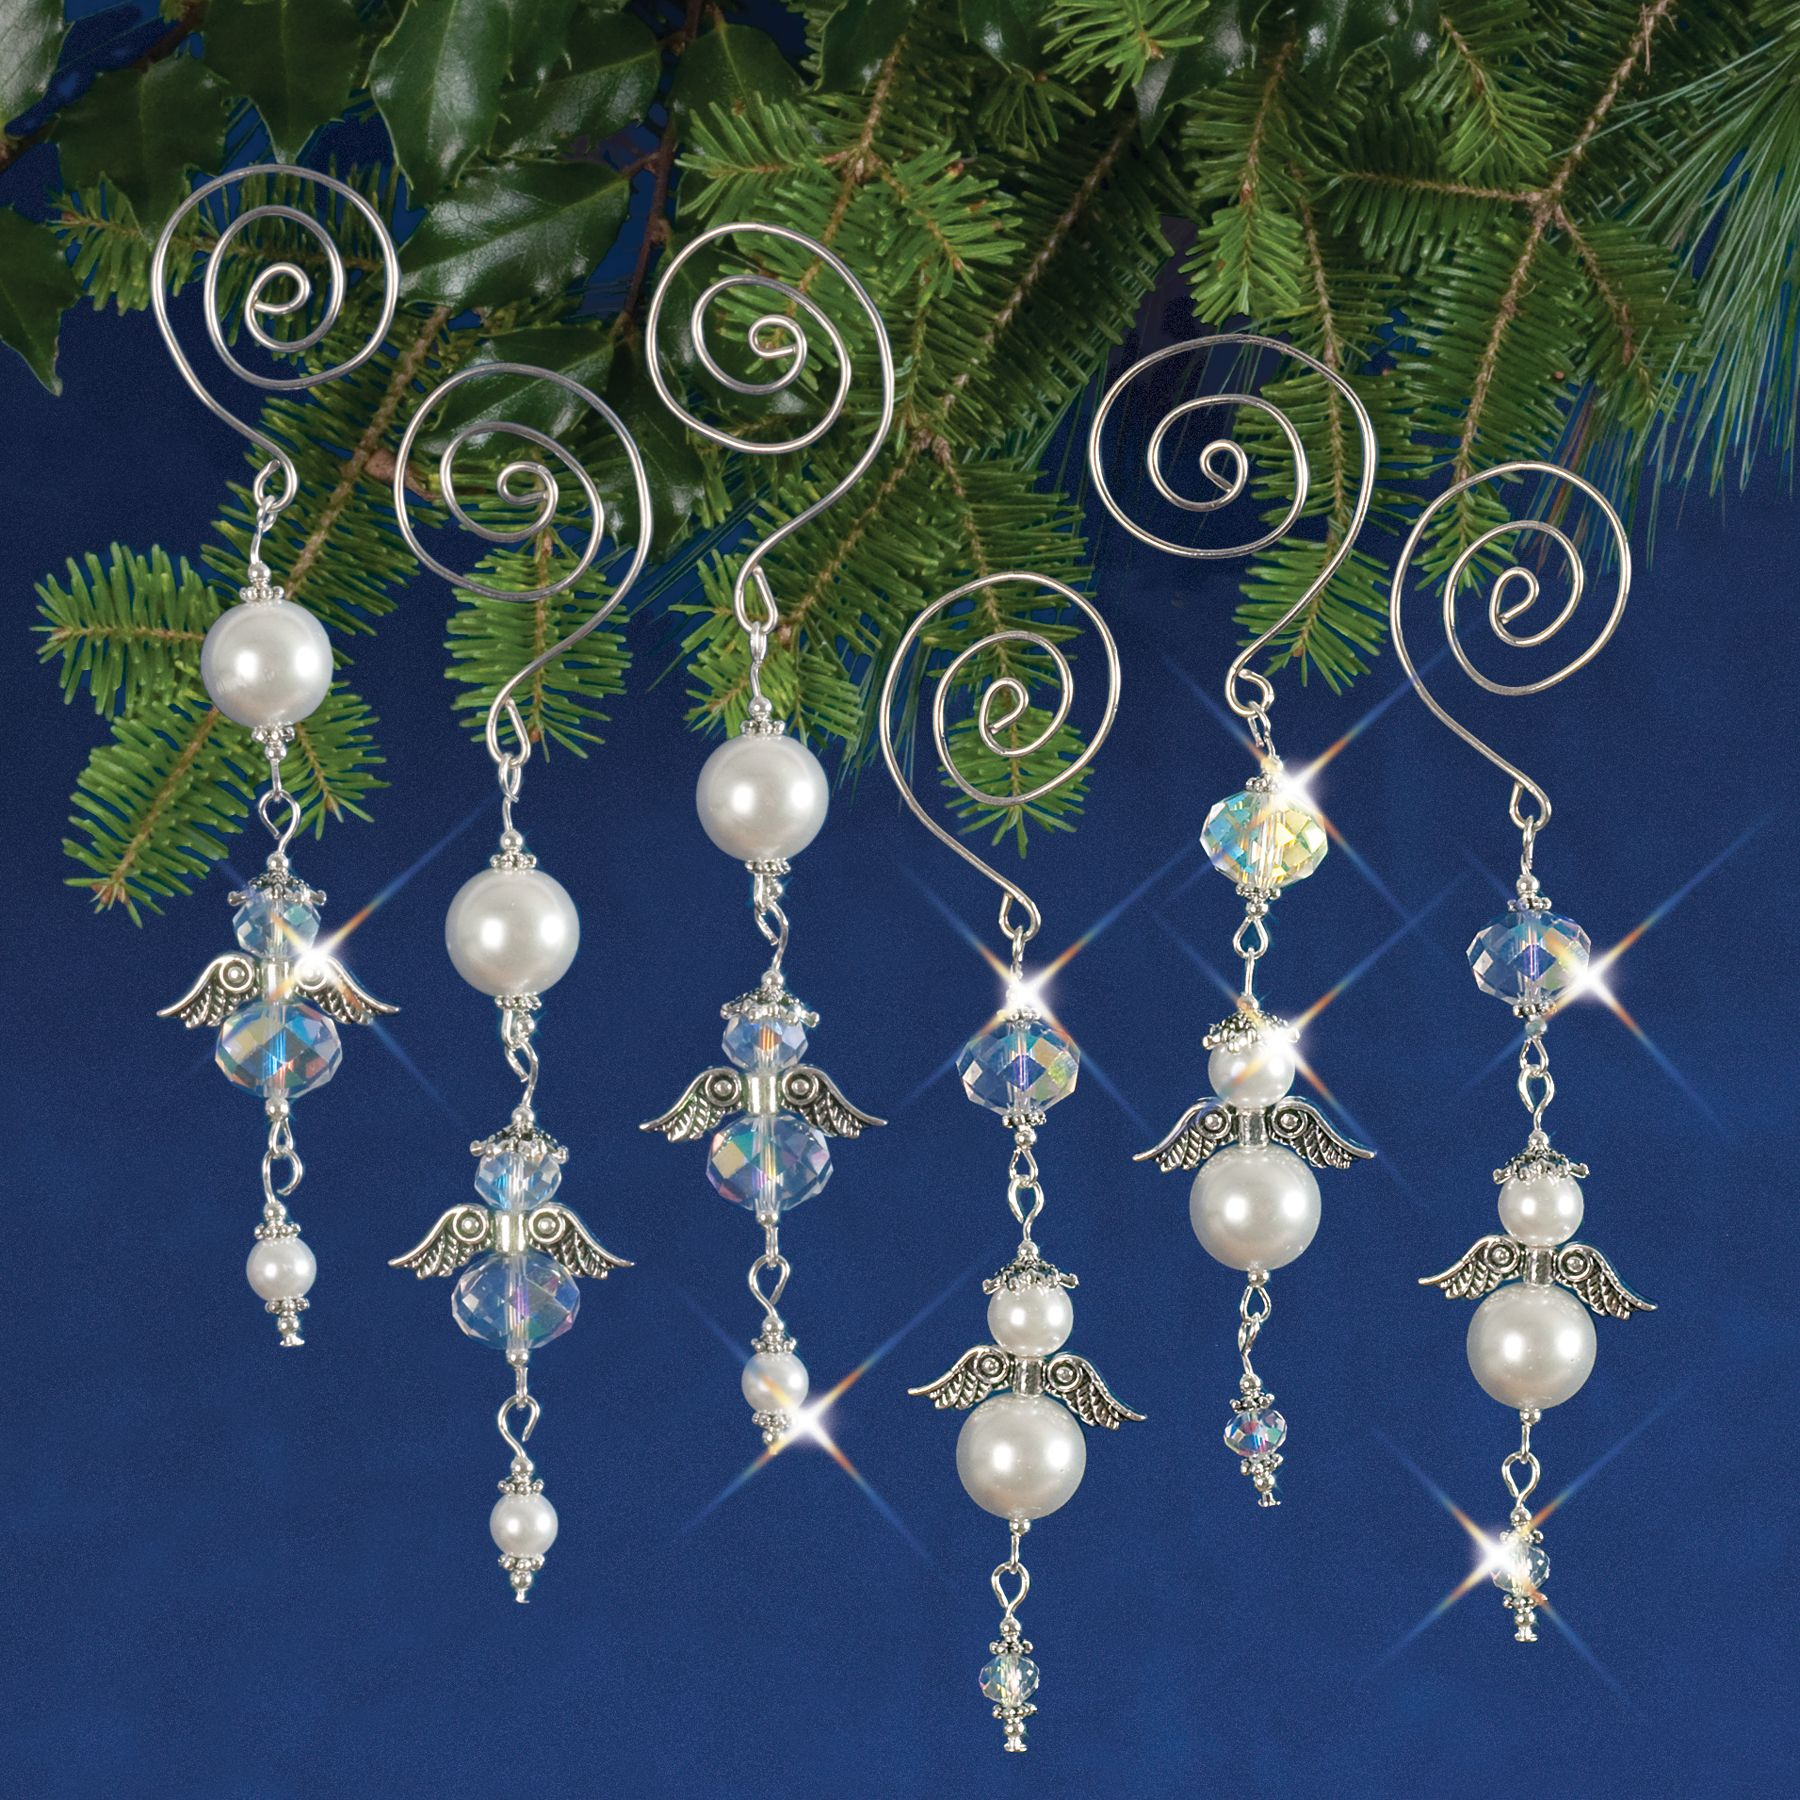 Dangling Angels made with sparkling faceted crystals, creamy satin glass pearls and glistening silver components and wire. Each kit make 6 dangling angels, 3 each of two designs.